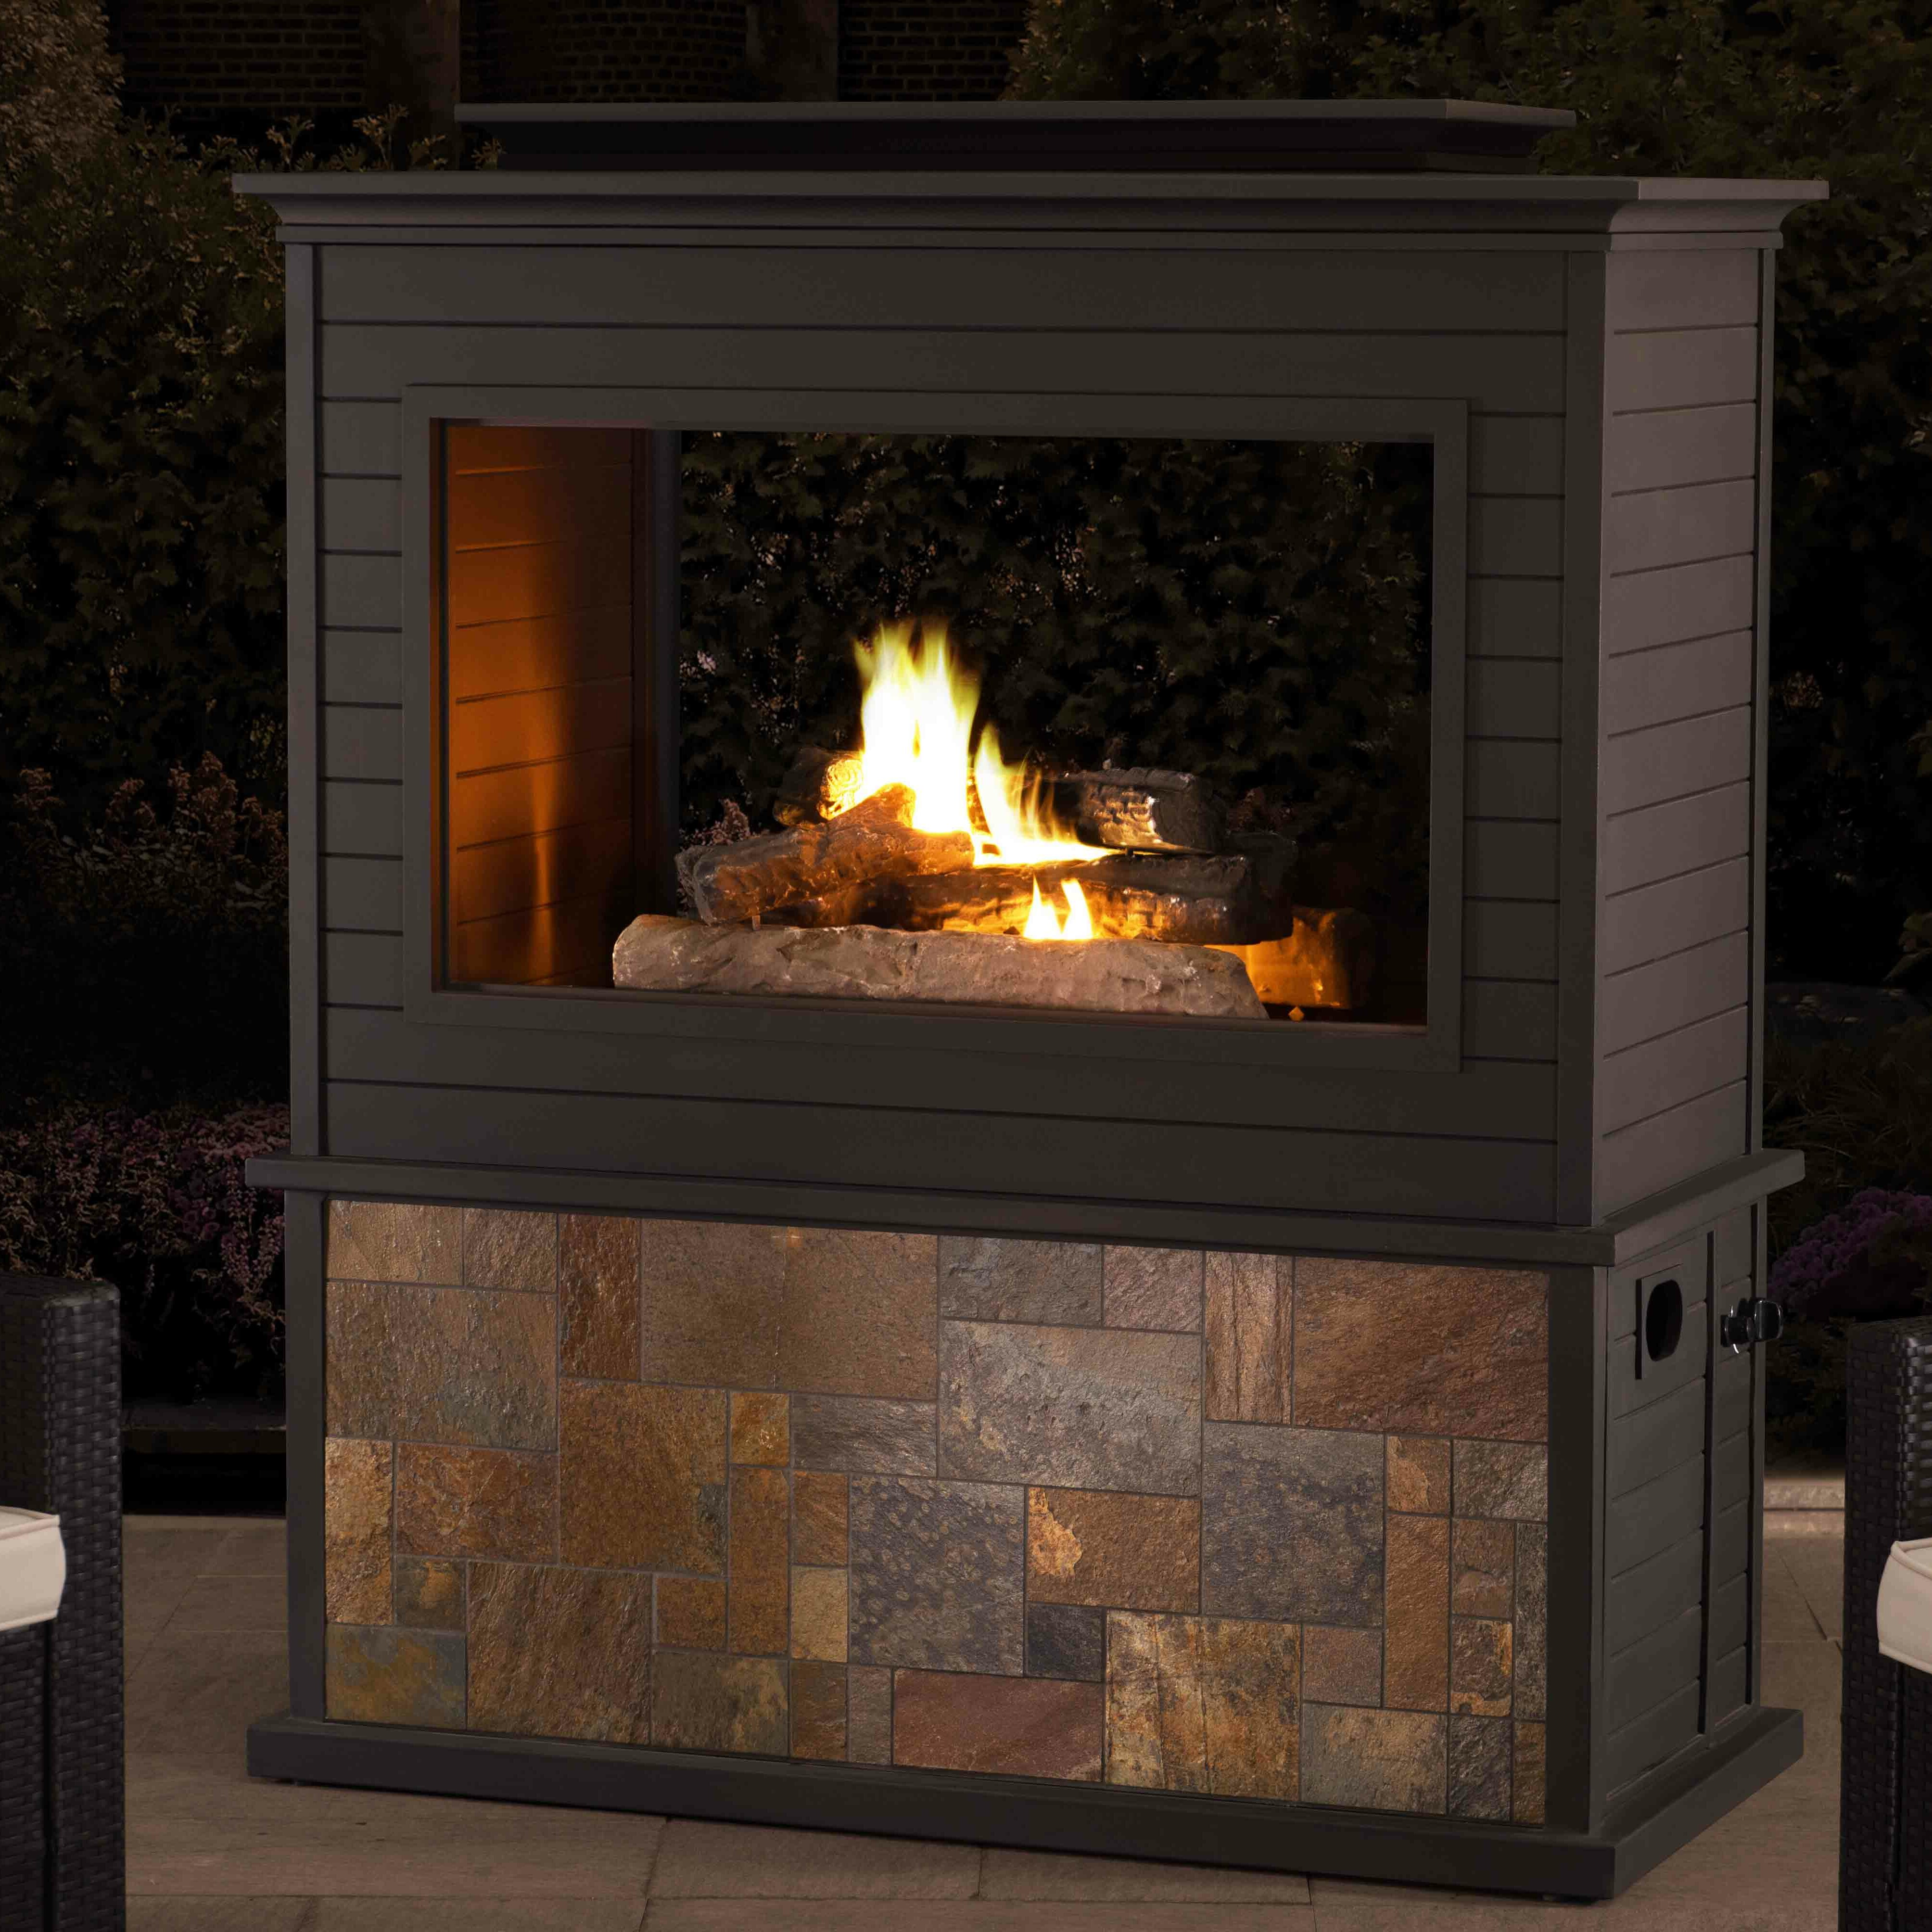 innovative sided view control featu flame wide tru amantii indoor remote outdoor optional is multicolor heat pin that an fireplace fireglass electric